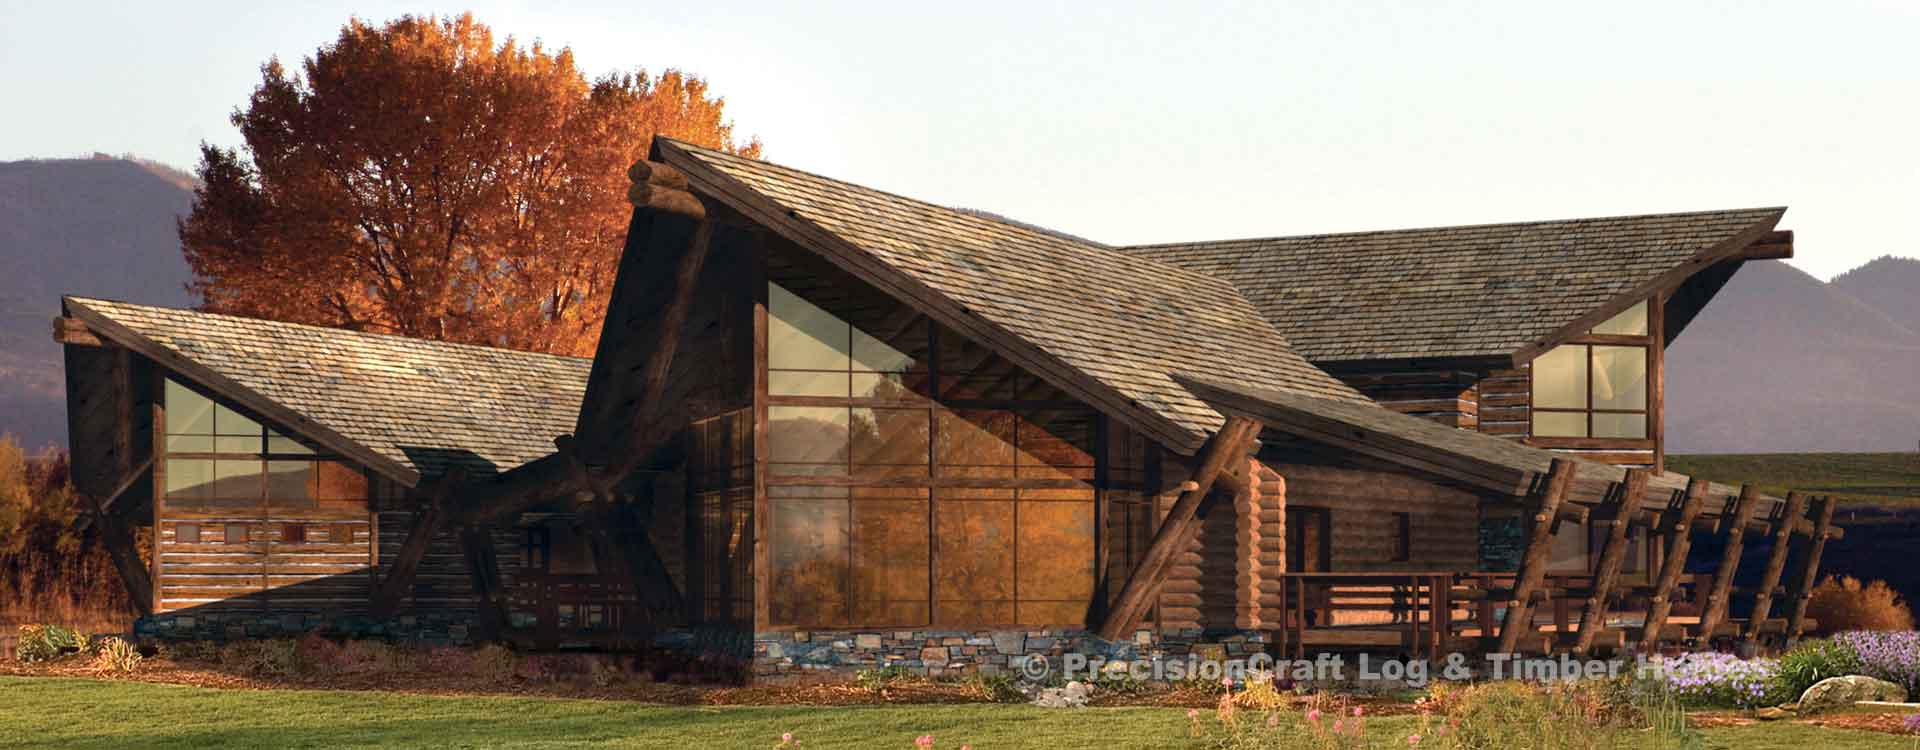 Edgewood Log Home Rendering